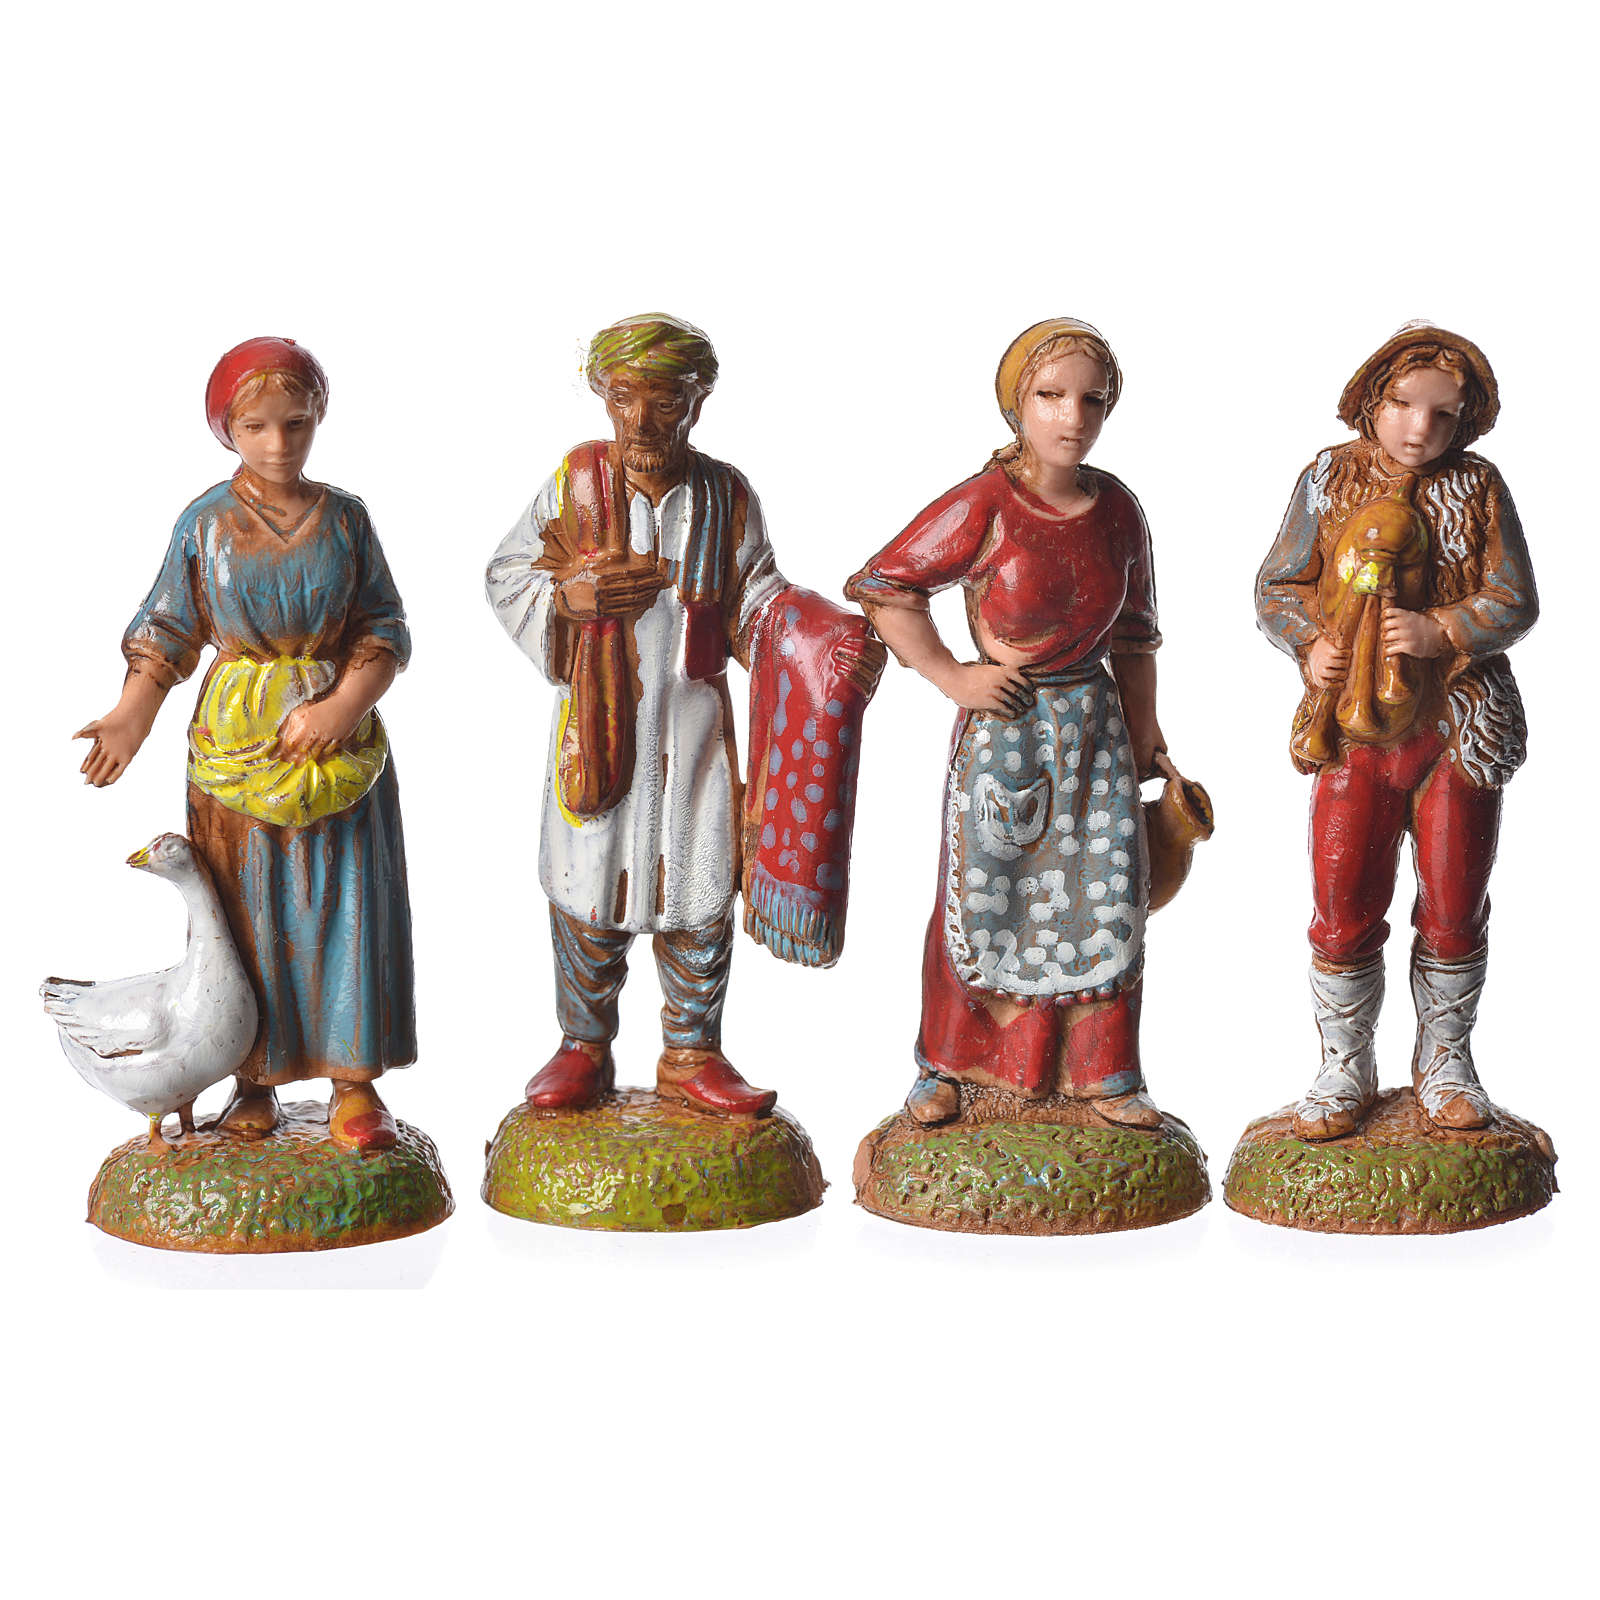 Shepherds, 24 nativity figurines, 6cm Moranduzzo 4